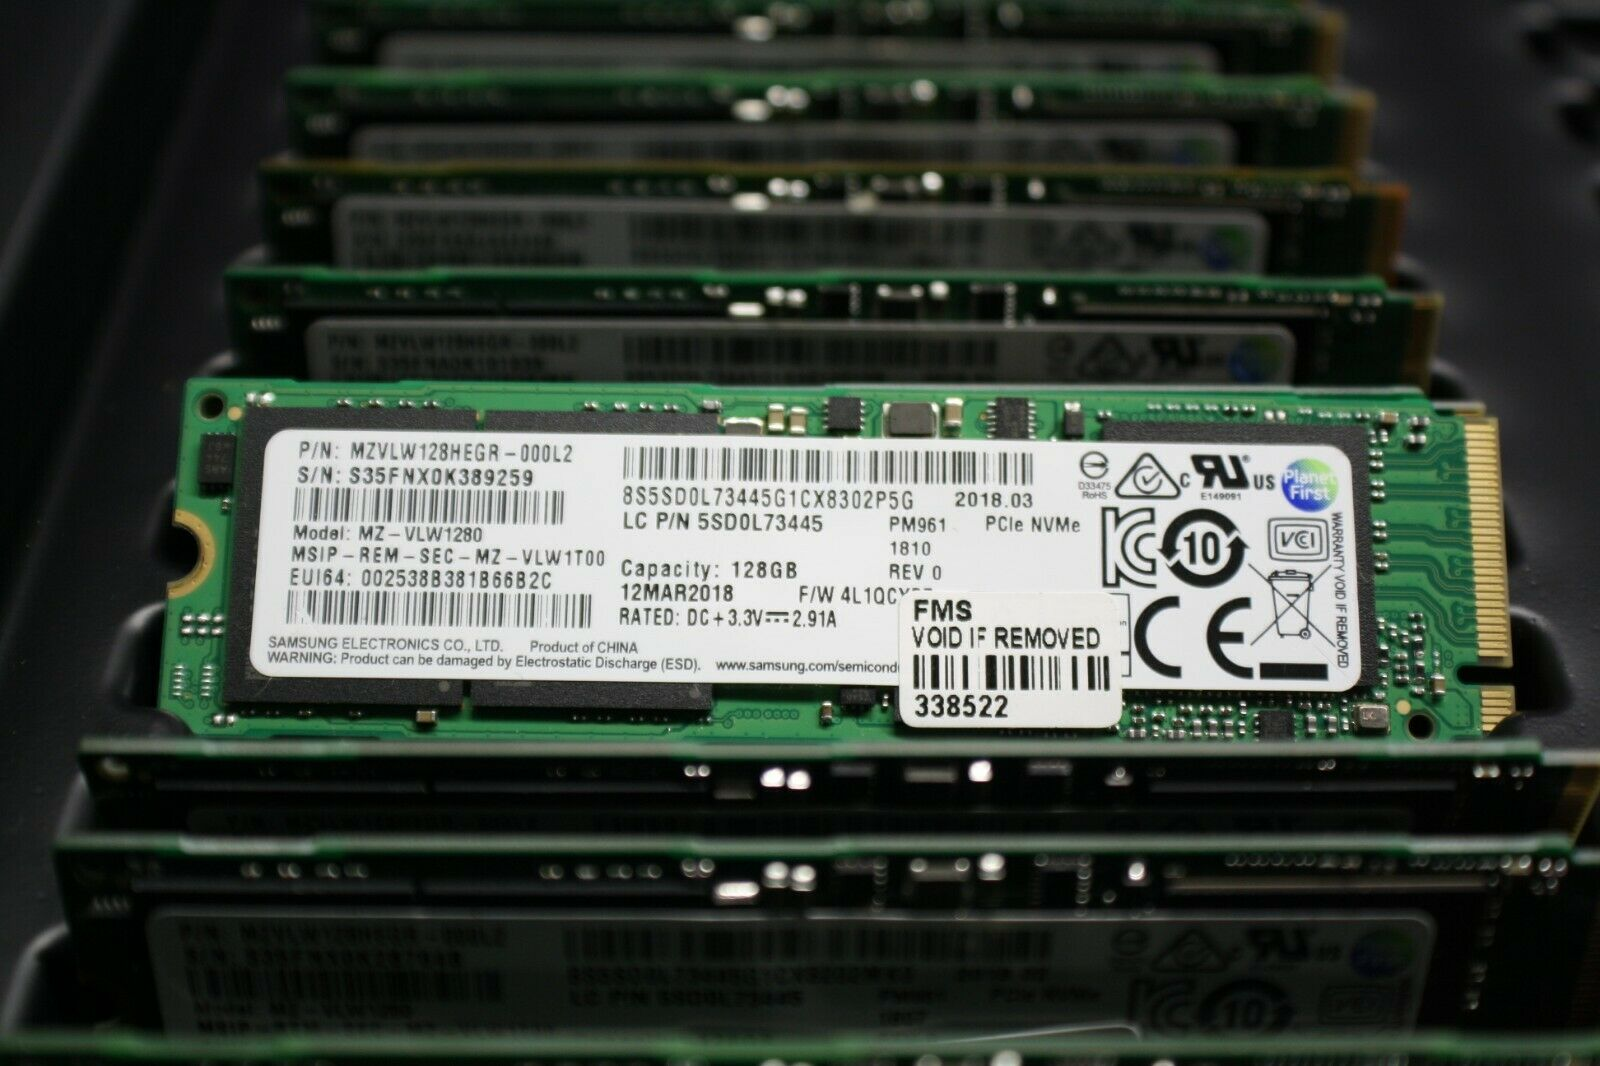 128GB SSD Samsung PM961 M.2 PCIe Gen3 x4 2280 NVMe V-NAND Solid state drive. Buy it now for 19.00